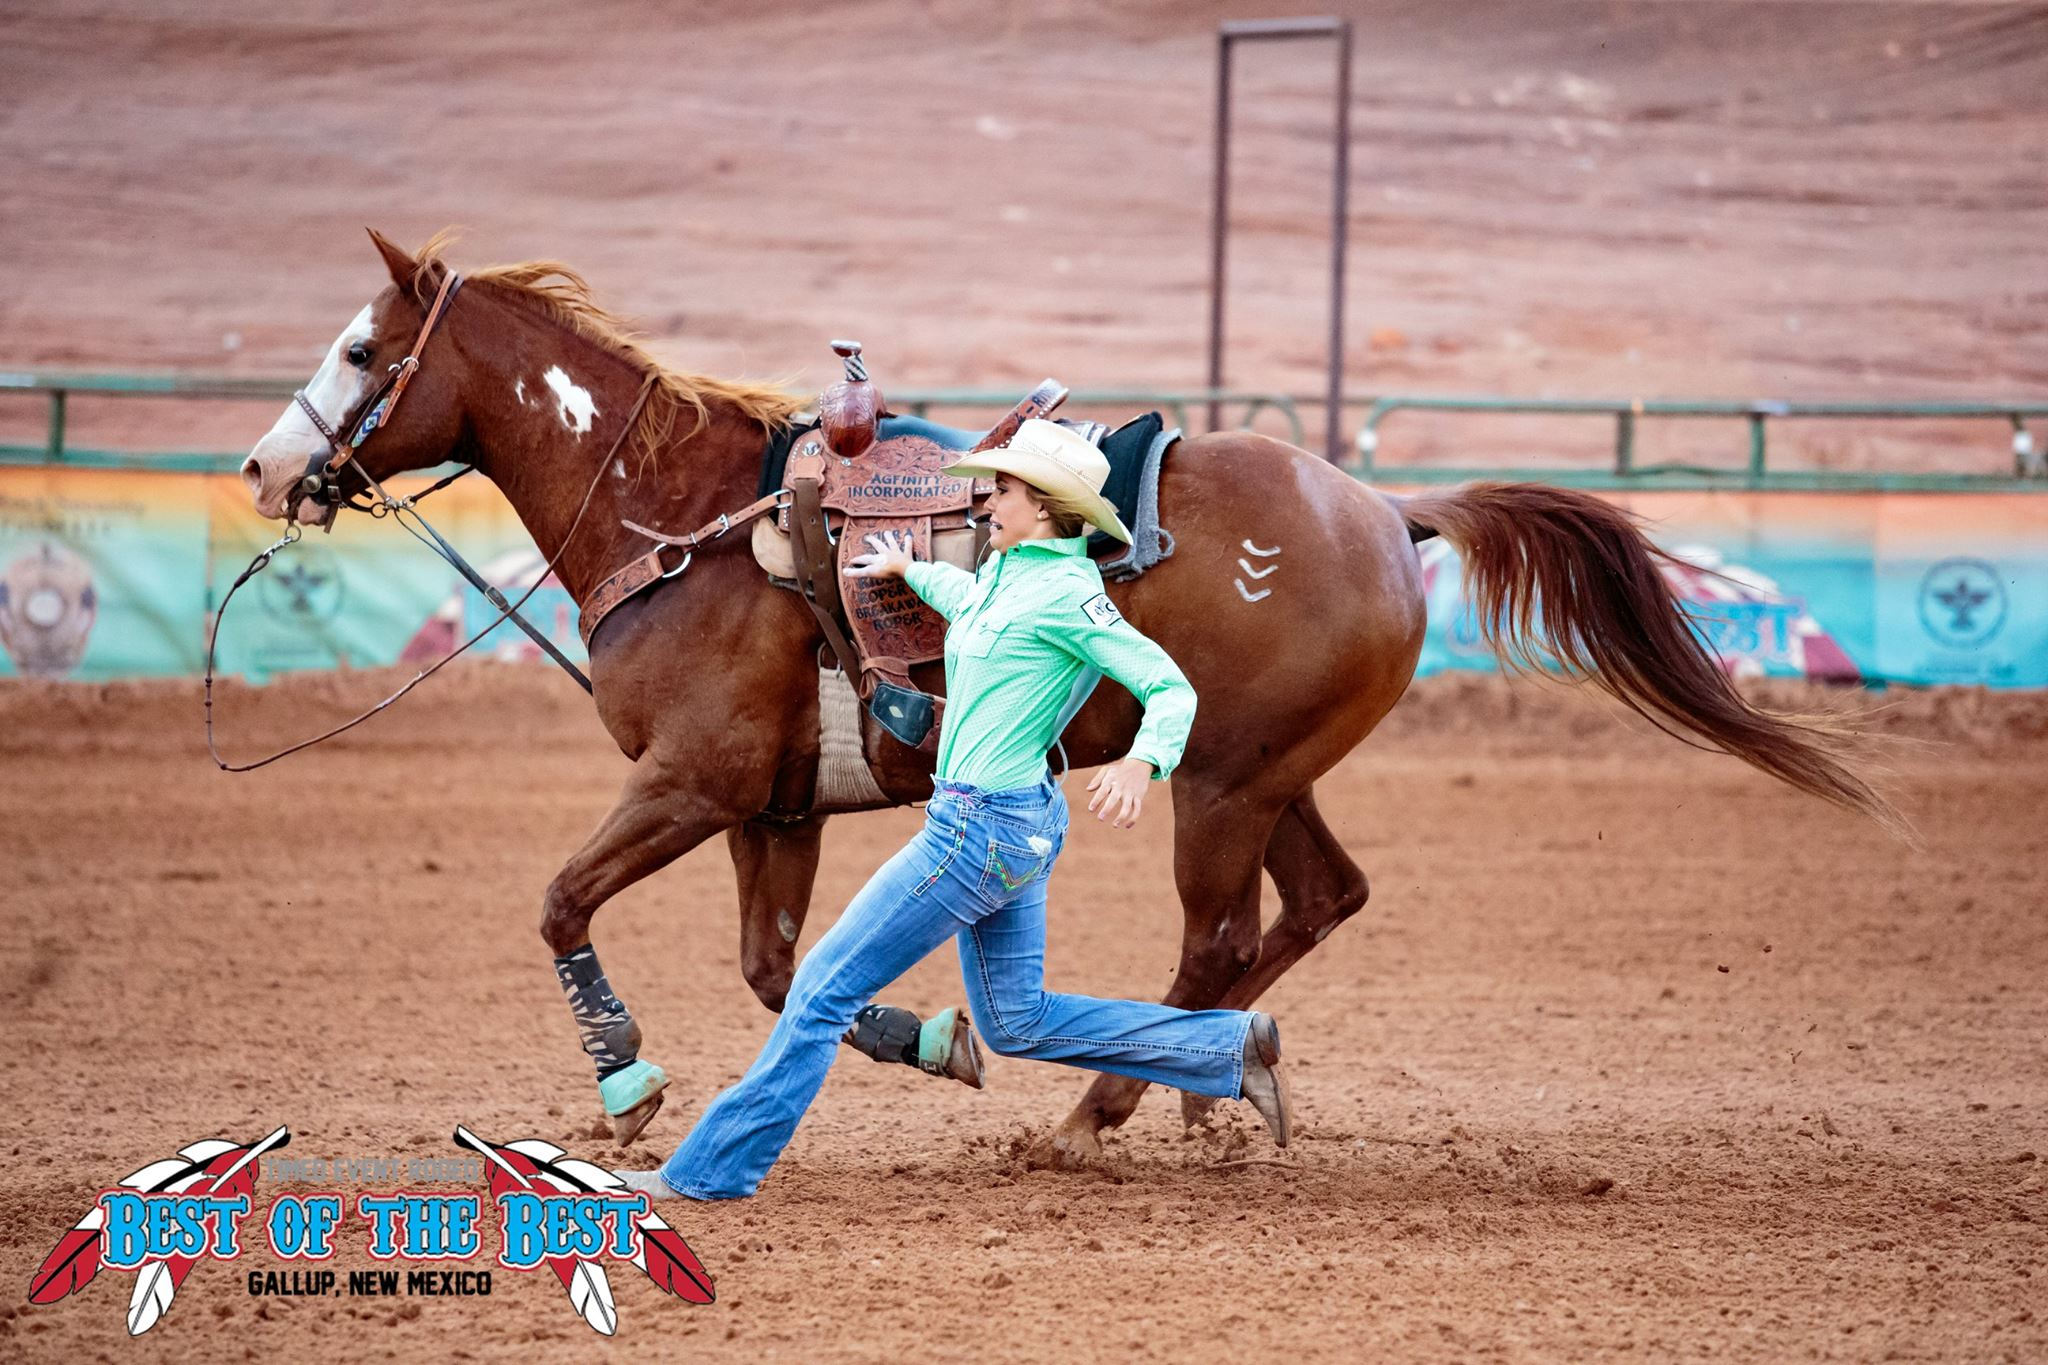 Best of the Best Rodeo